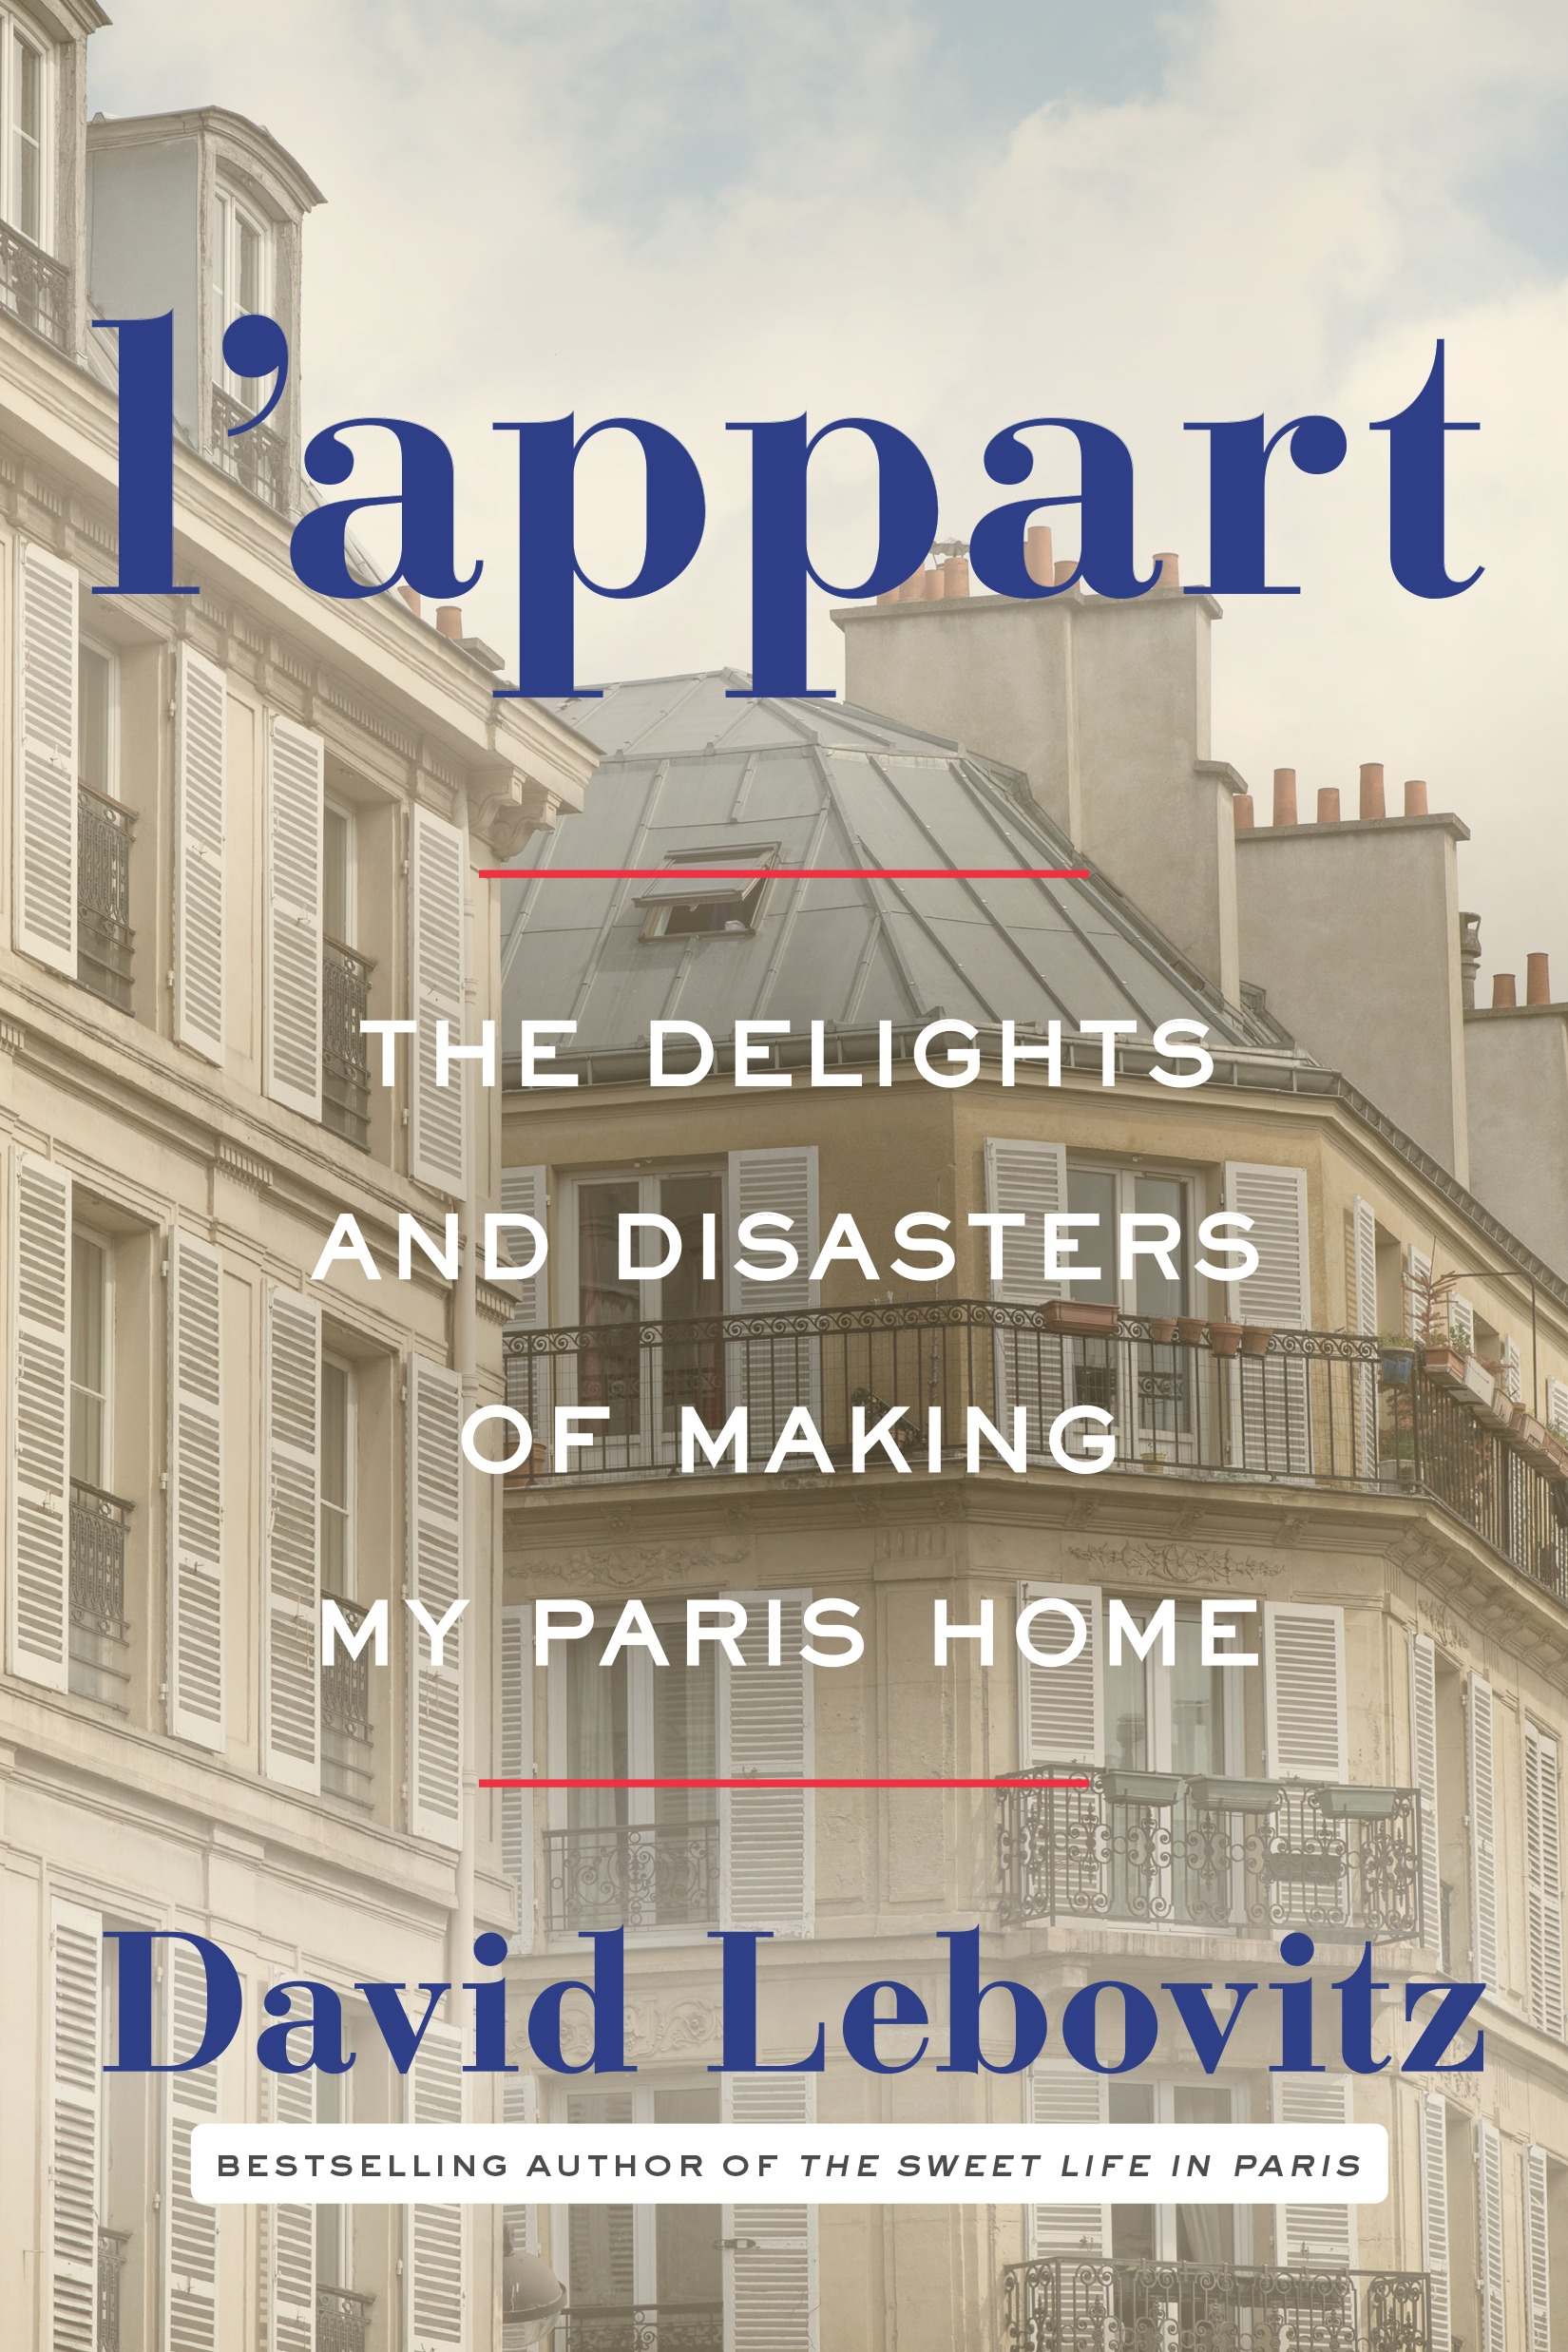 L'appart Book Tour - with David Lebovitz